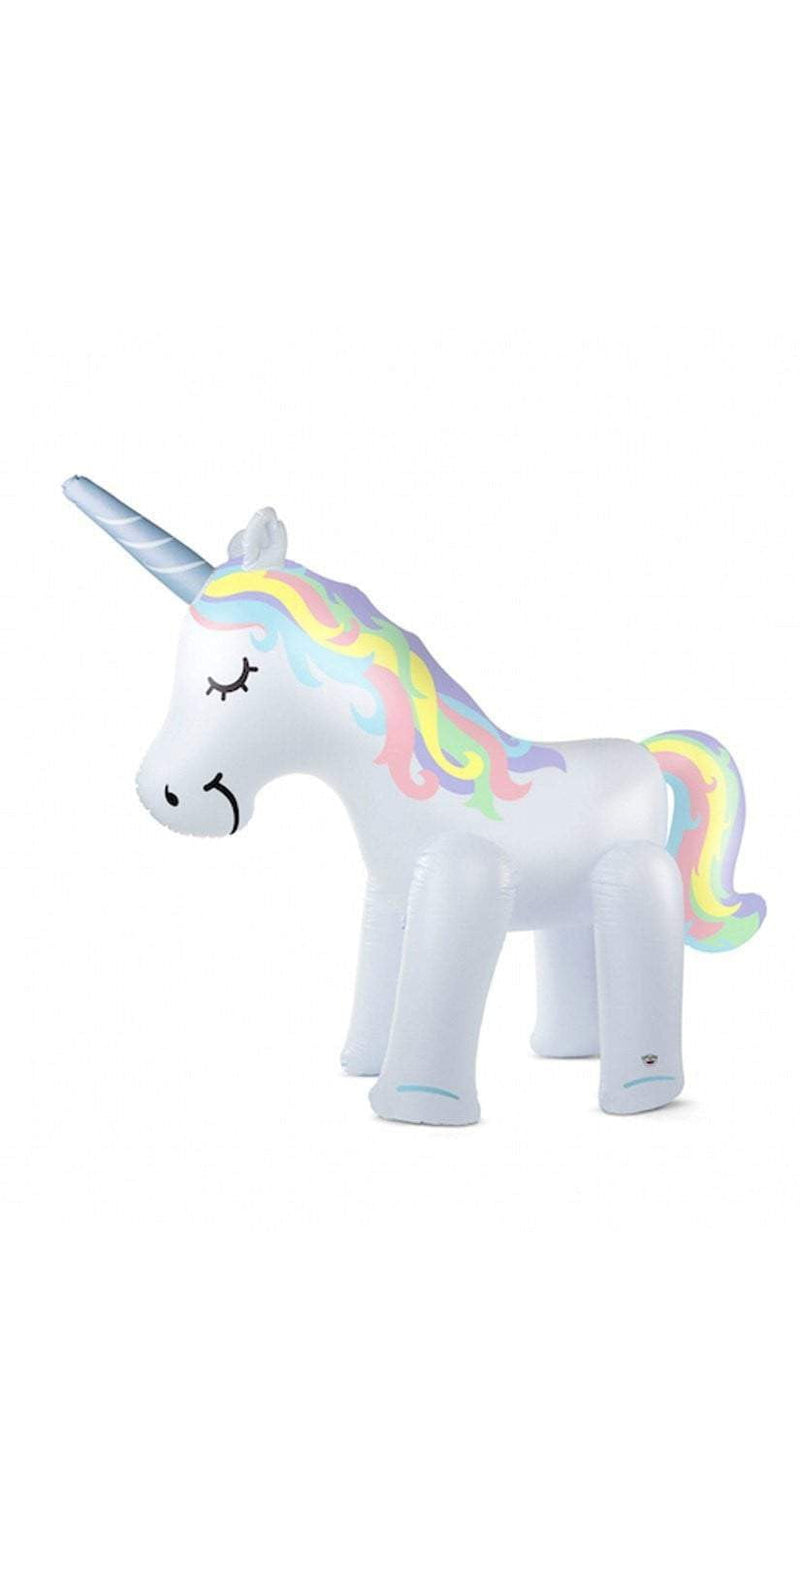 Big Mouth Ginormous Unicorn Yard Sprinkler: